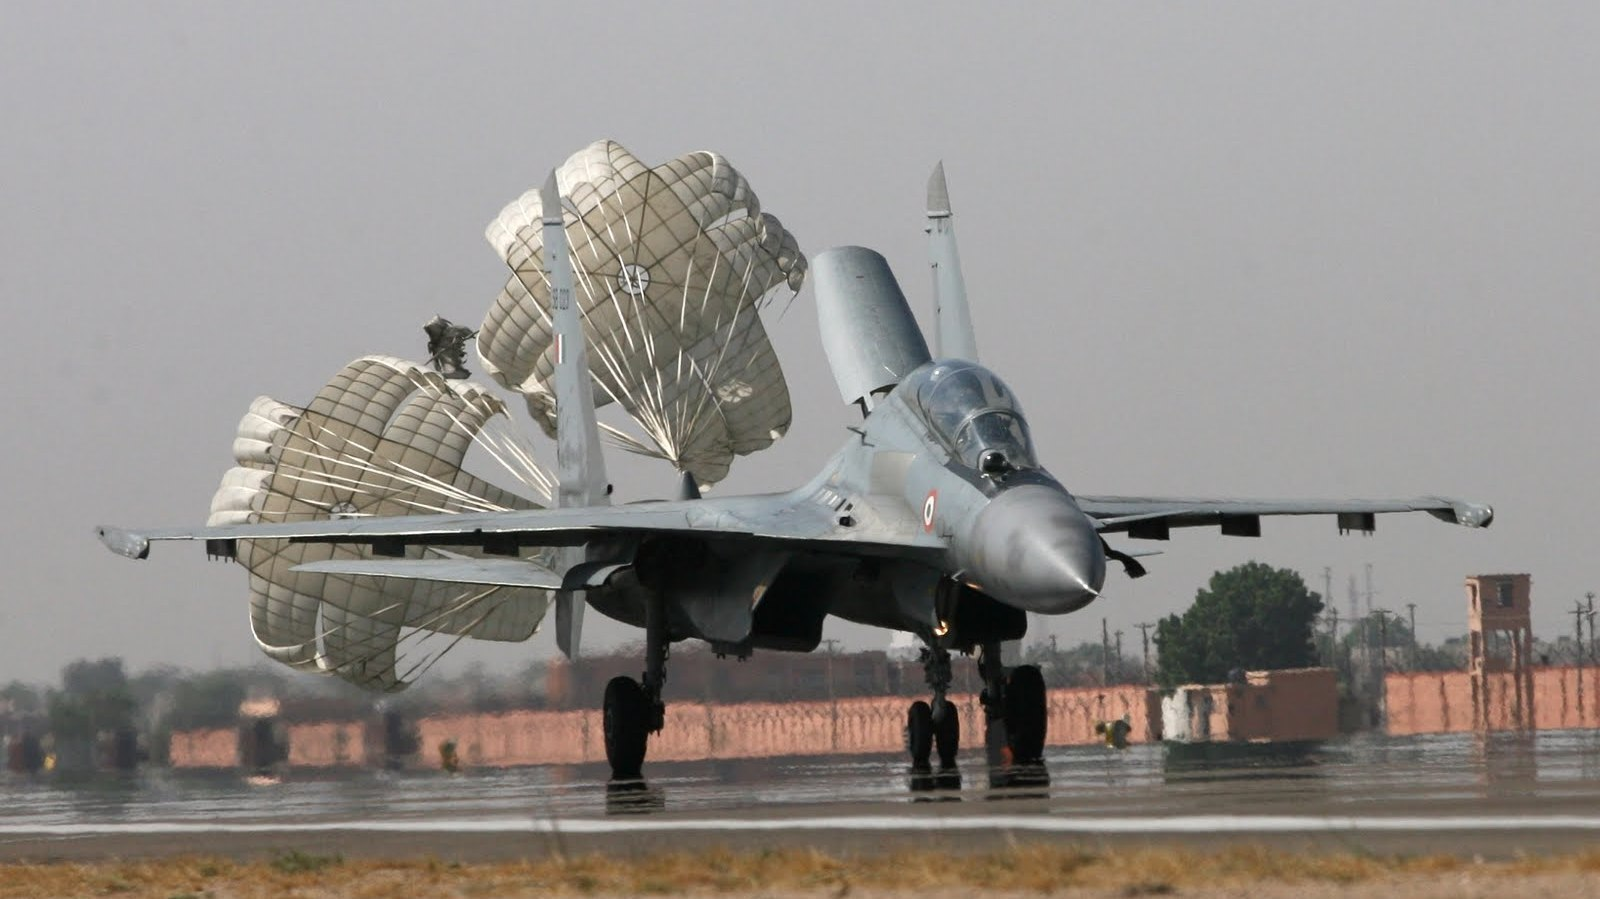 http://3.bp.blogspot.com/-juyJAqsW3ho/Ti7qYdErT0I/AAAAAAAAGDI/T0CzpWI88kE/s1600/sukhoi_su_30mki2_indian_air_force_with_air_brakes_8765823_aircraft-wallpaper.jpg